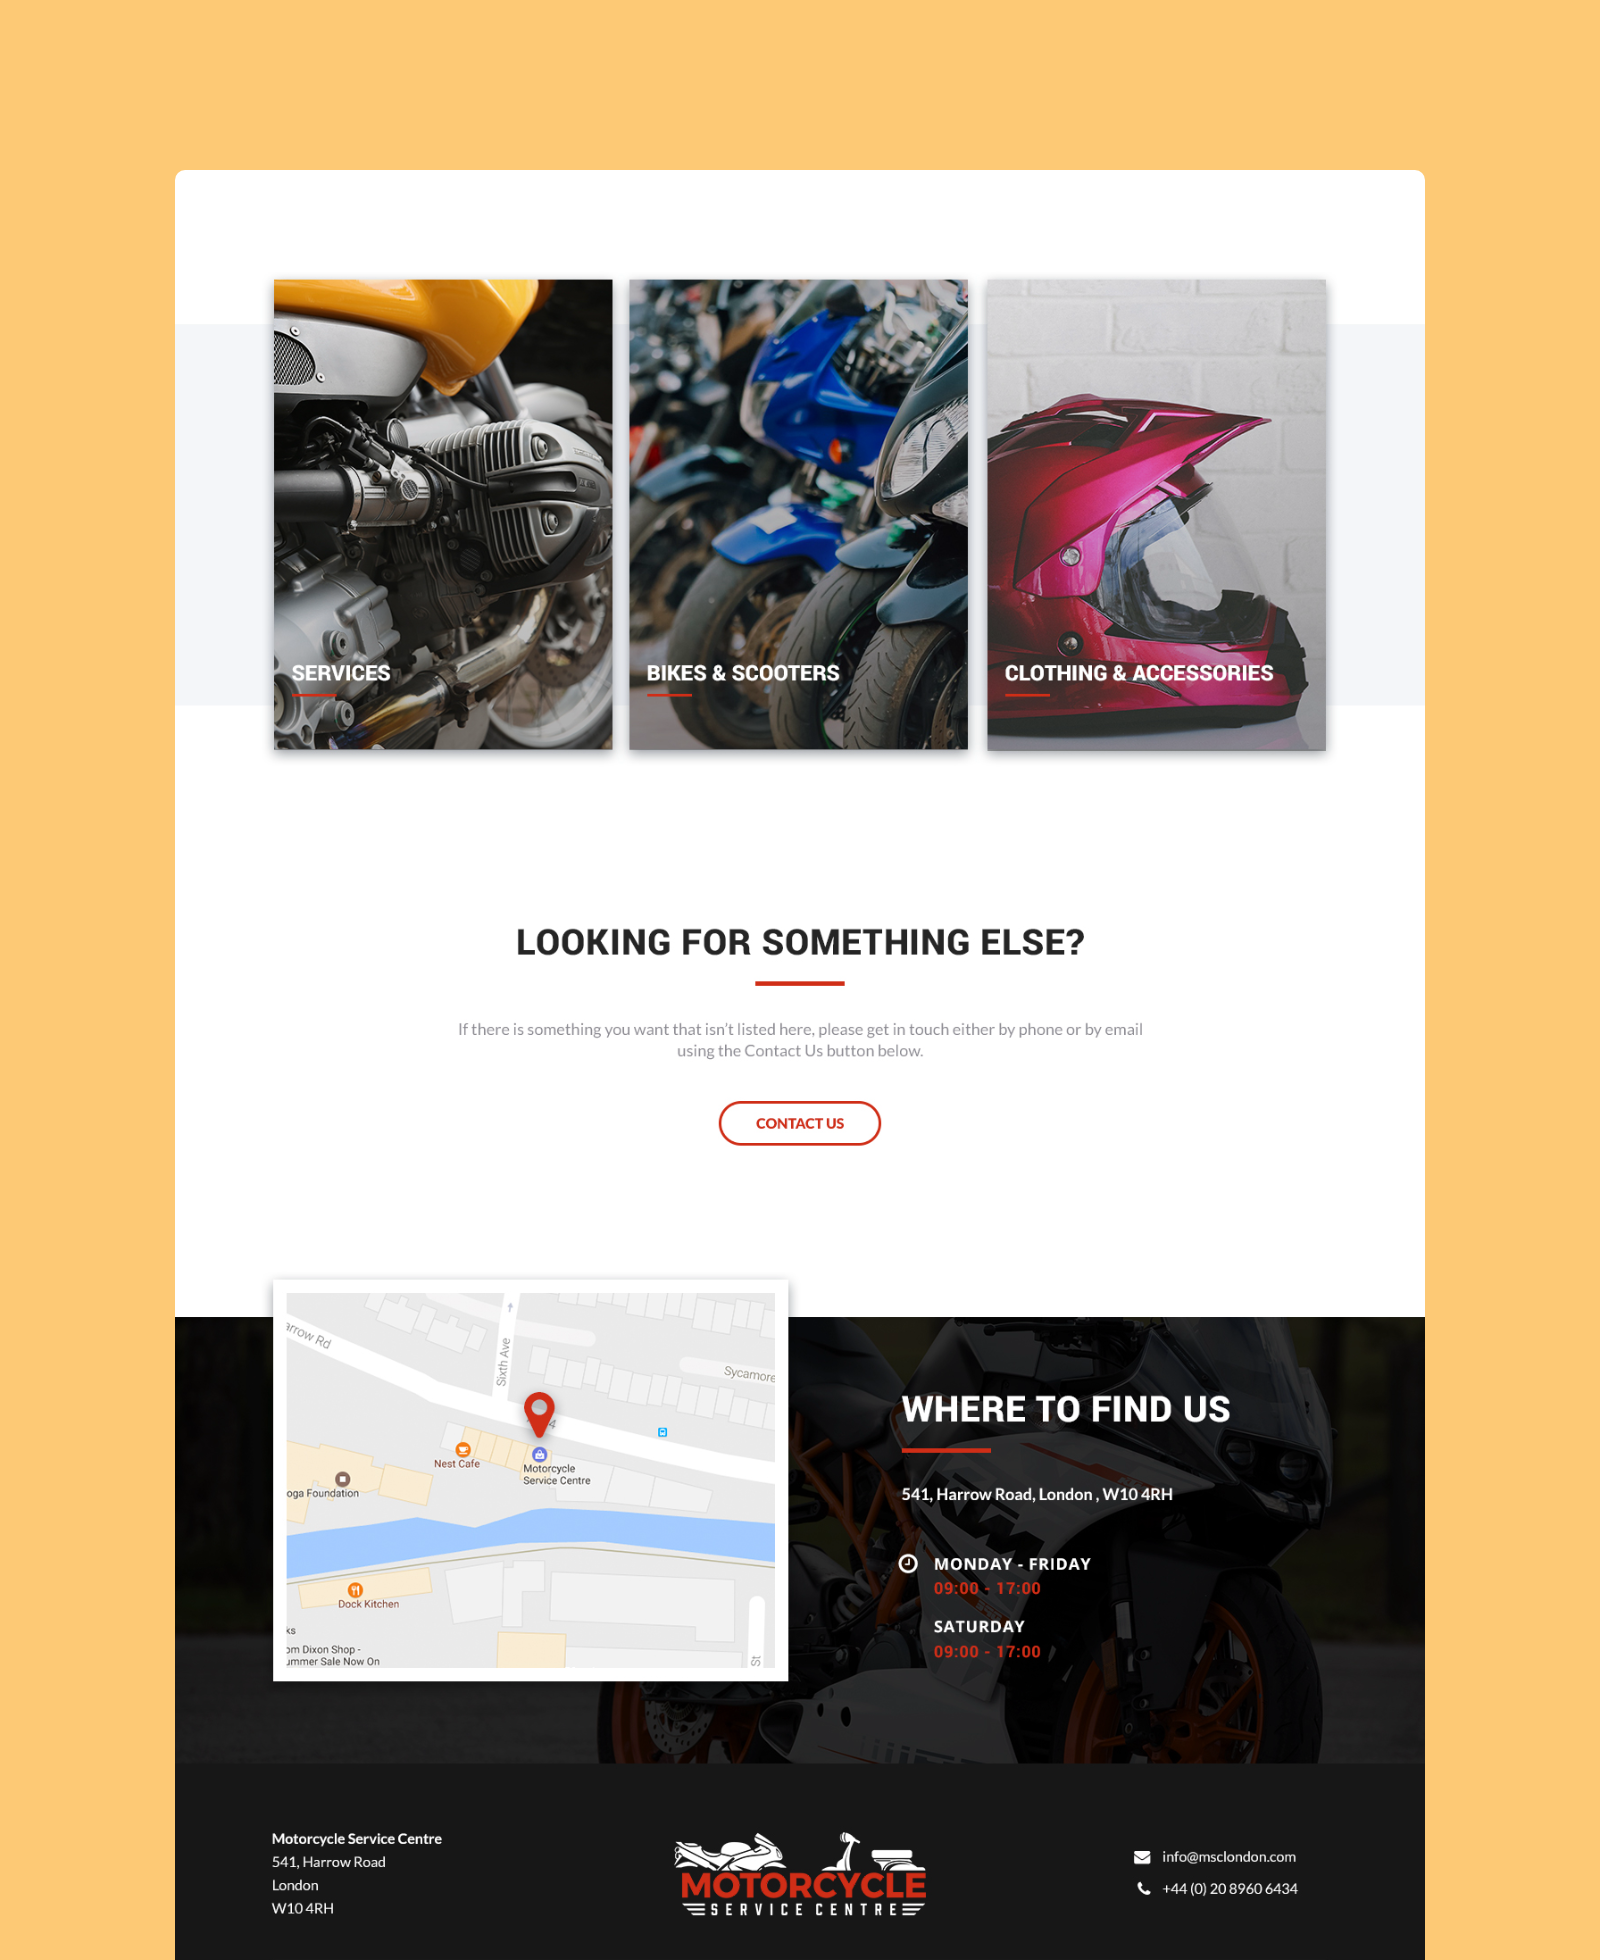 Motorcycle Service Centre Footer Design